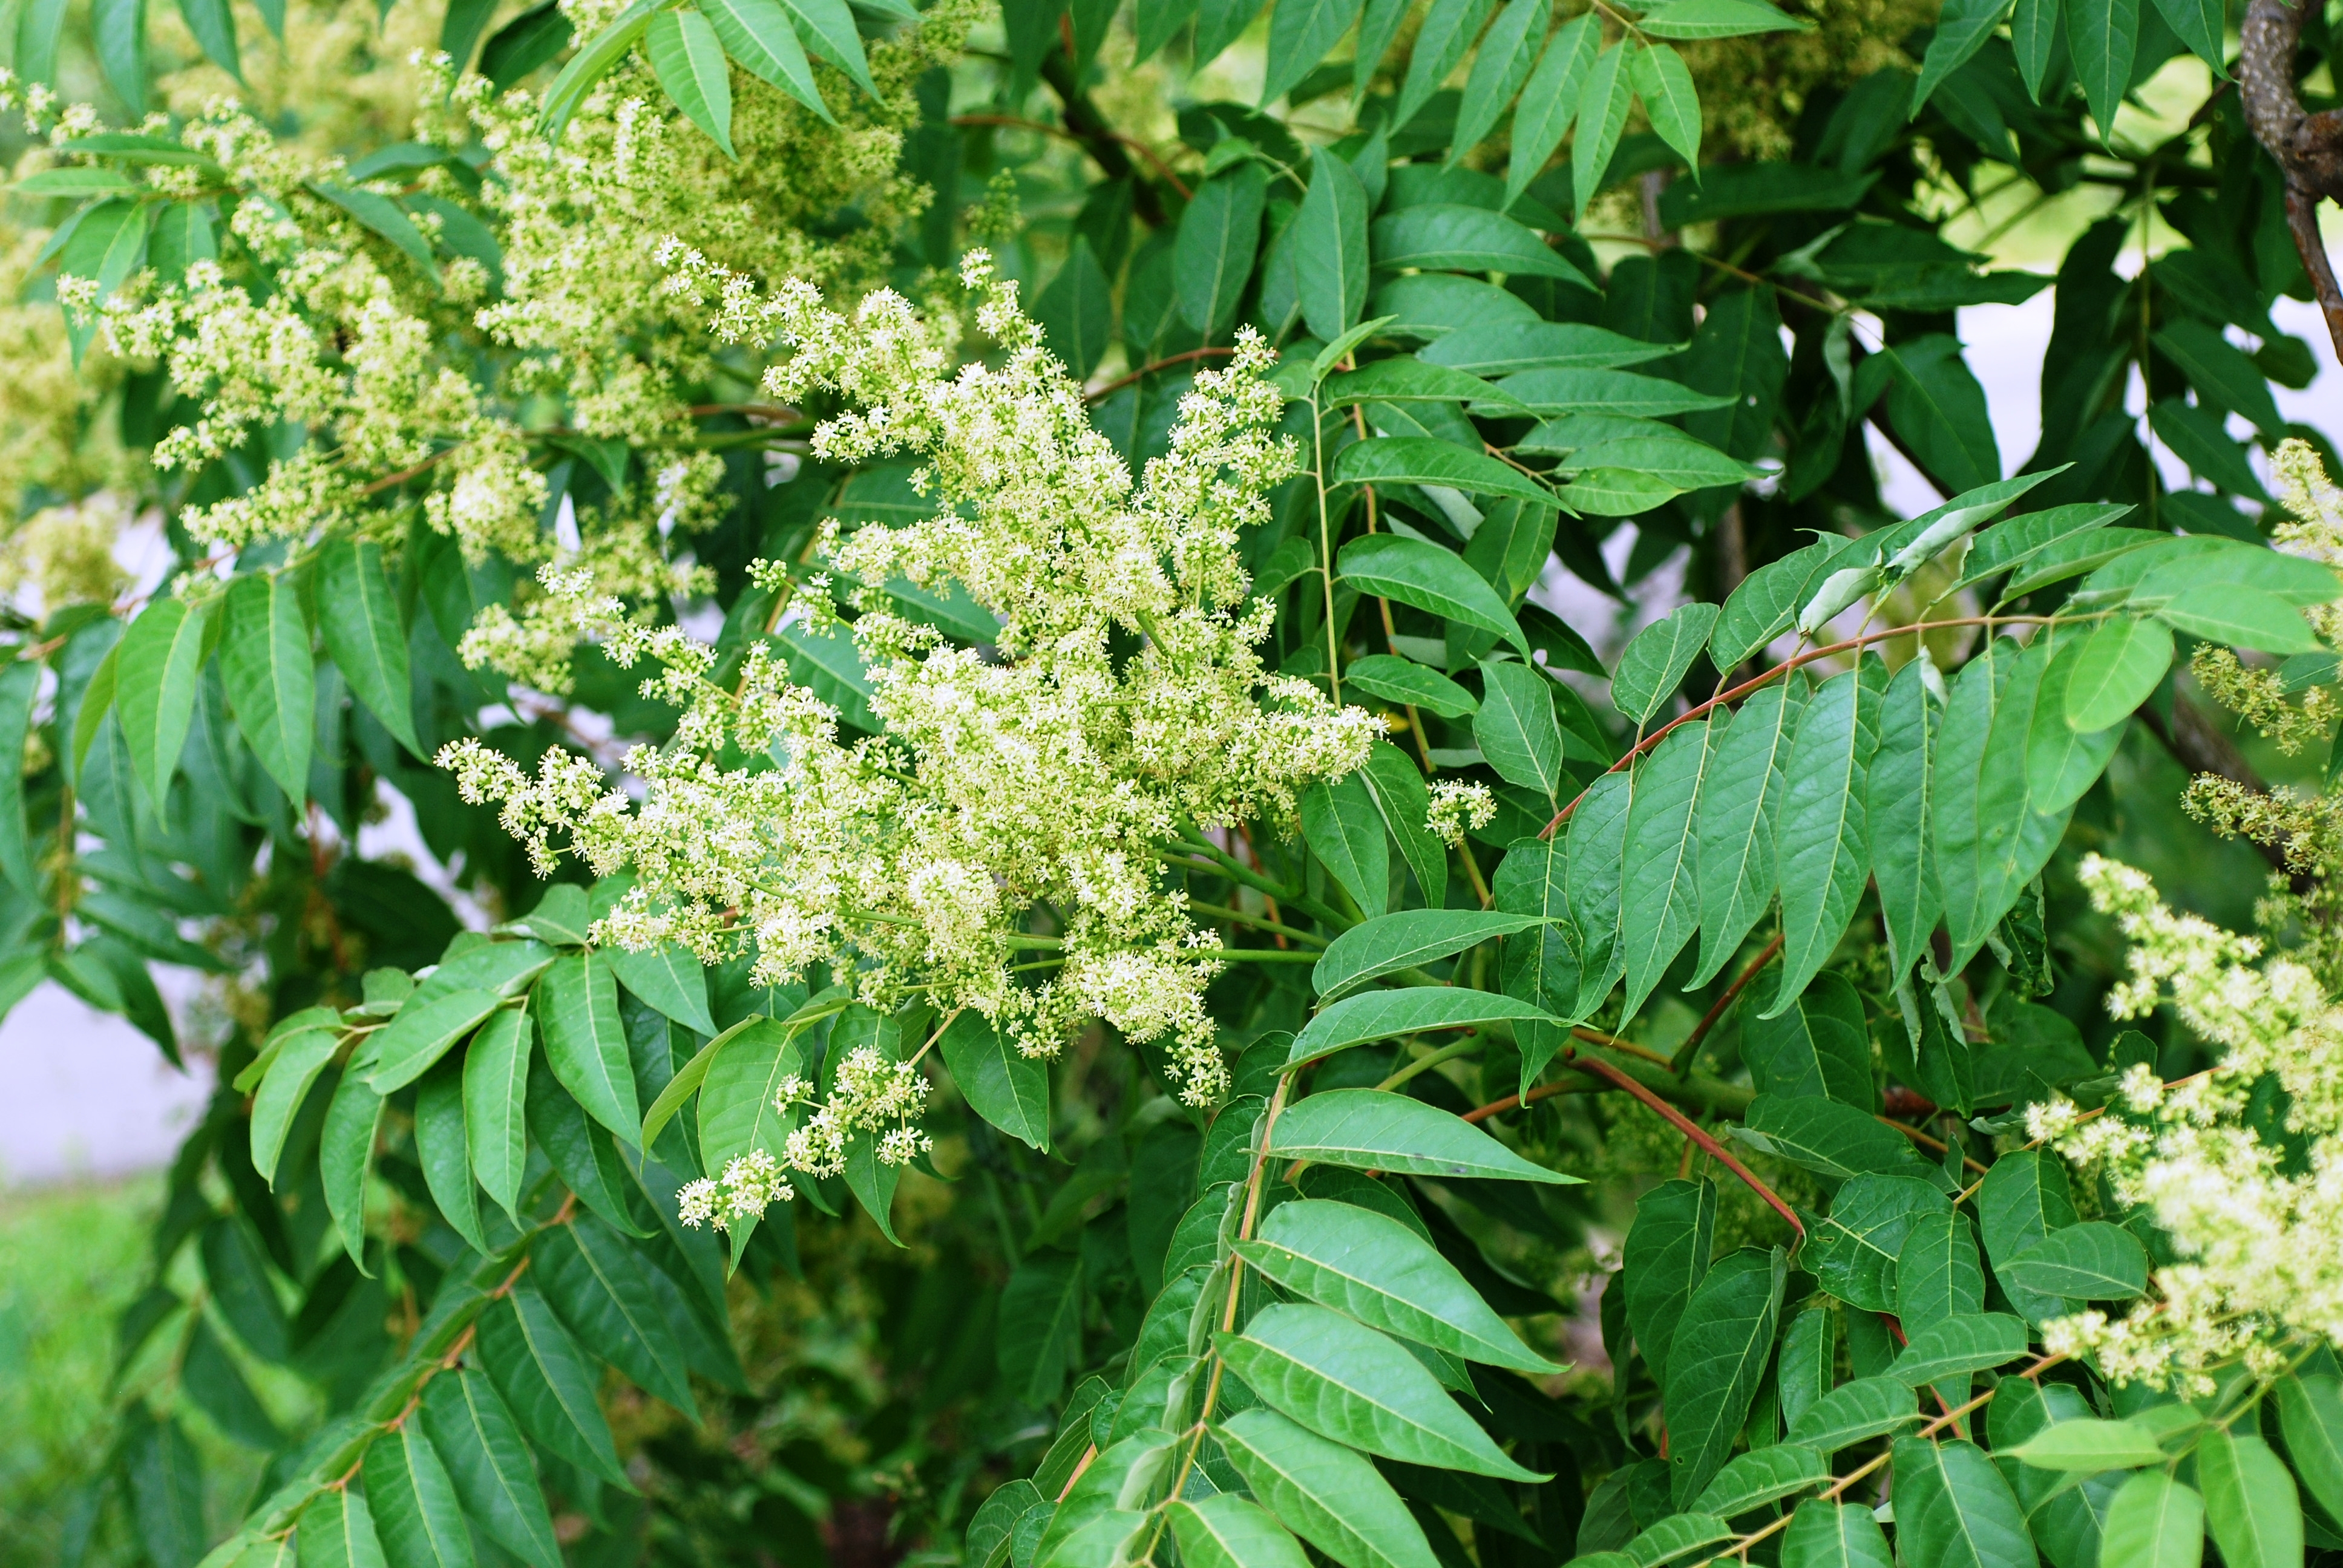 invasive plant species tree of heaven with flowers producing foul scent